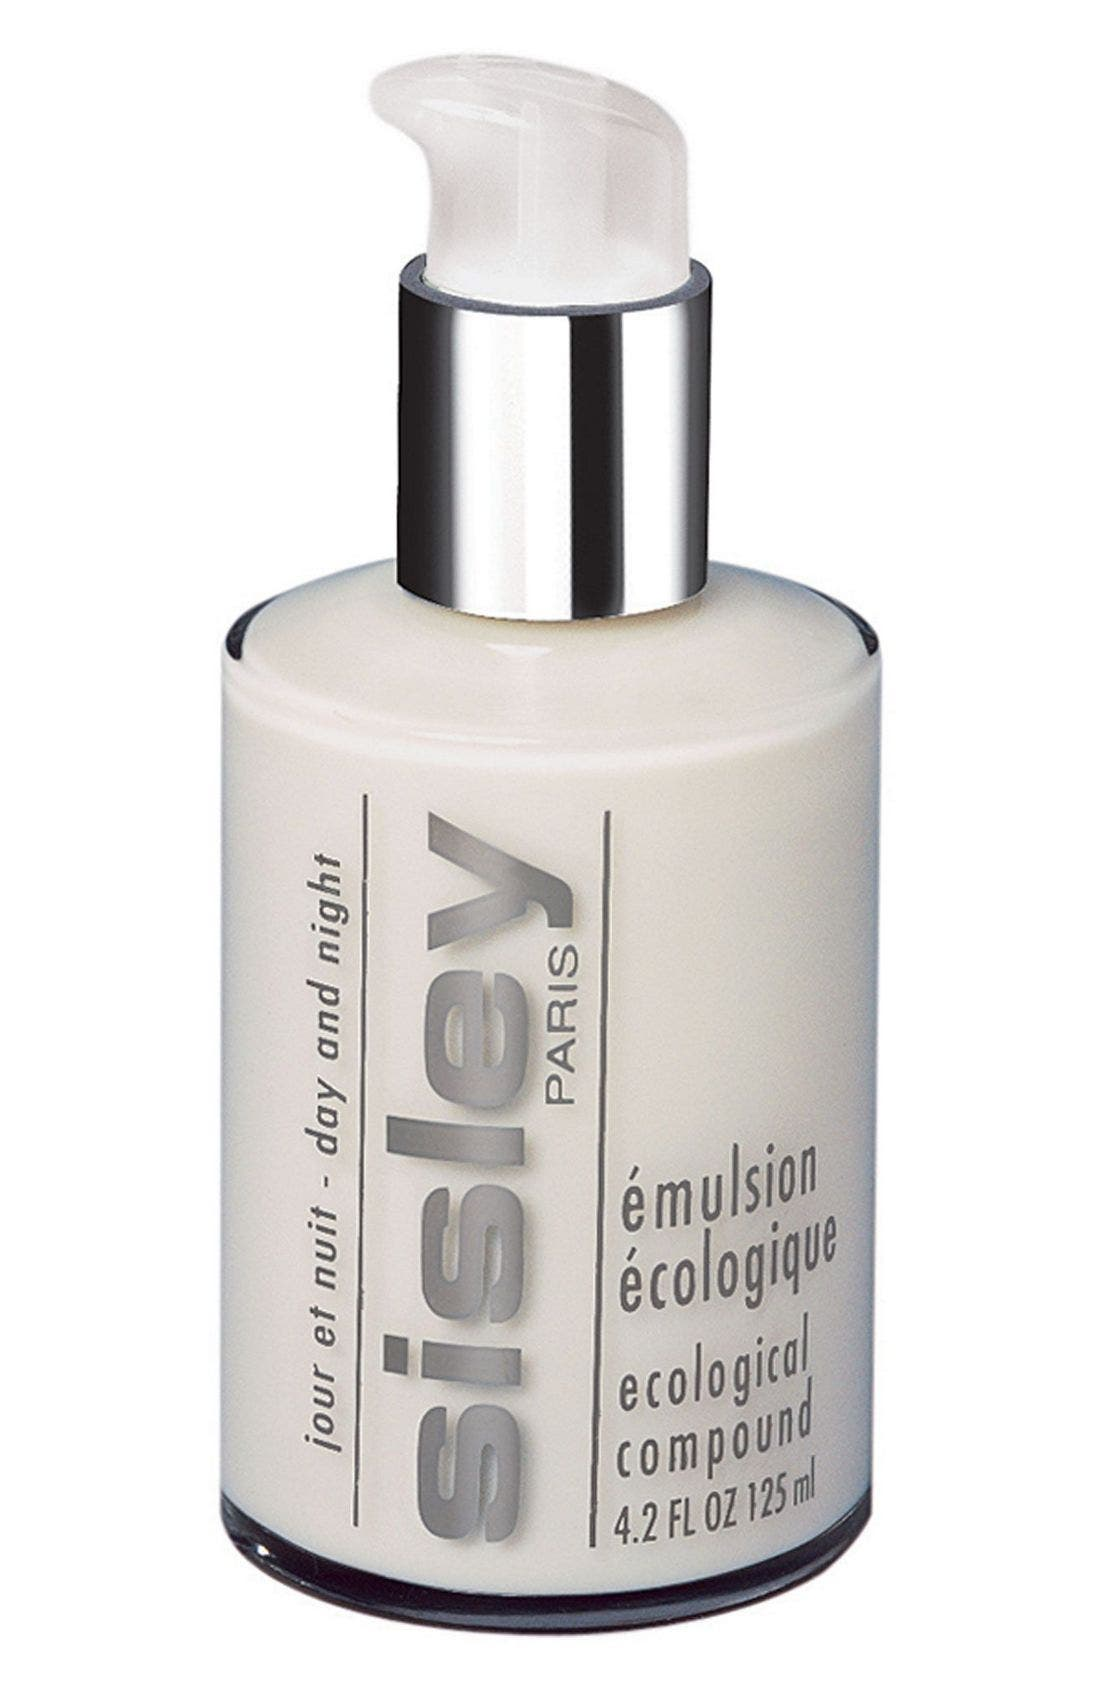 What it is: Ecological Compound, or Emulsion Ecologique, is an essential revitalizing and moisturizing skin care product. Who it\\\'s for: All skin types. What it does: Formulated with a synergistic compound of plants-centellia Asiatica, ginseng, rosemary, hops and horsetail-selected for their stimulated and revitalizing actions, this compound hydrates your skin, restoring comfort and radiance while helping fight off environmental stress to restore